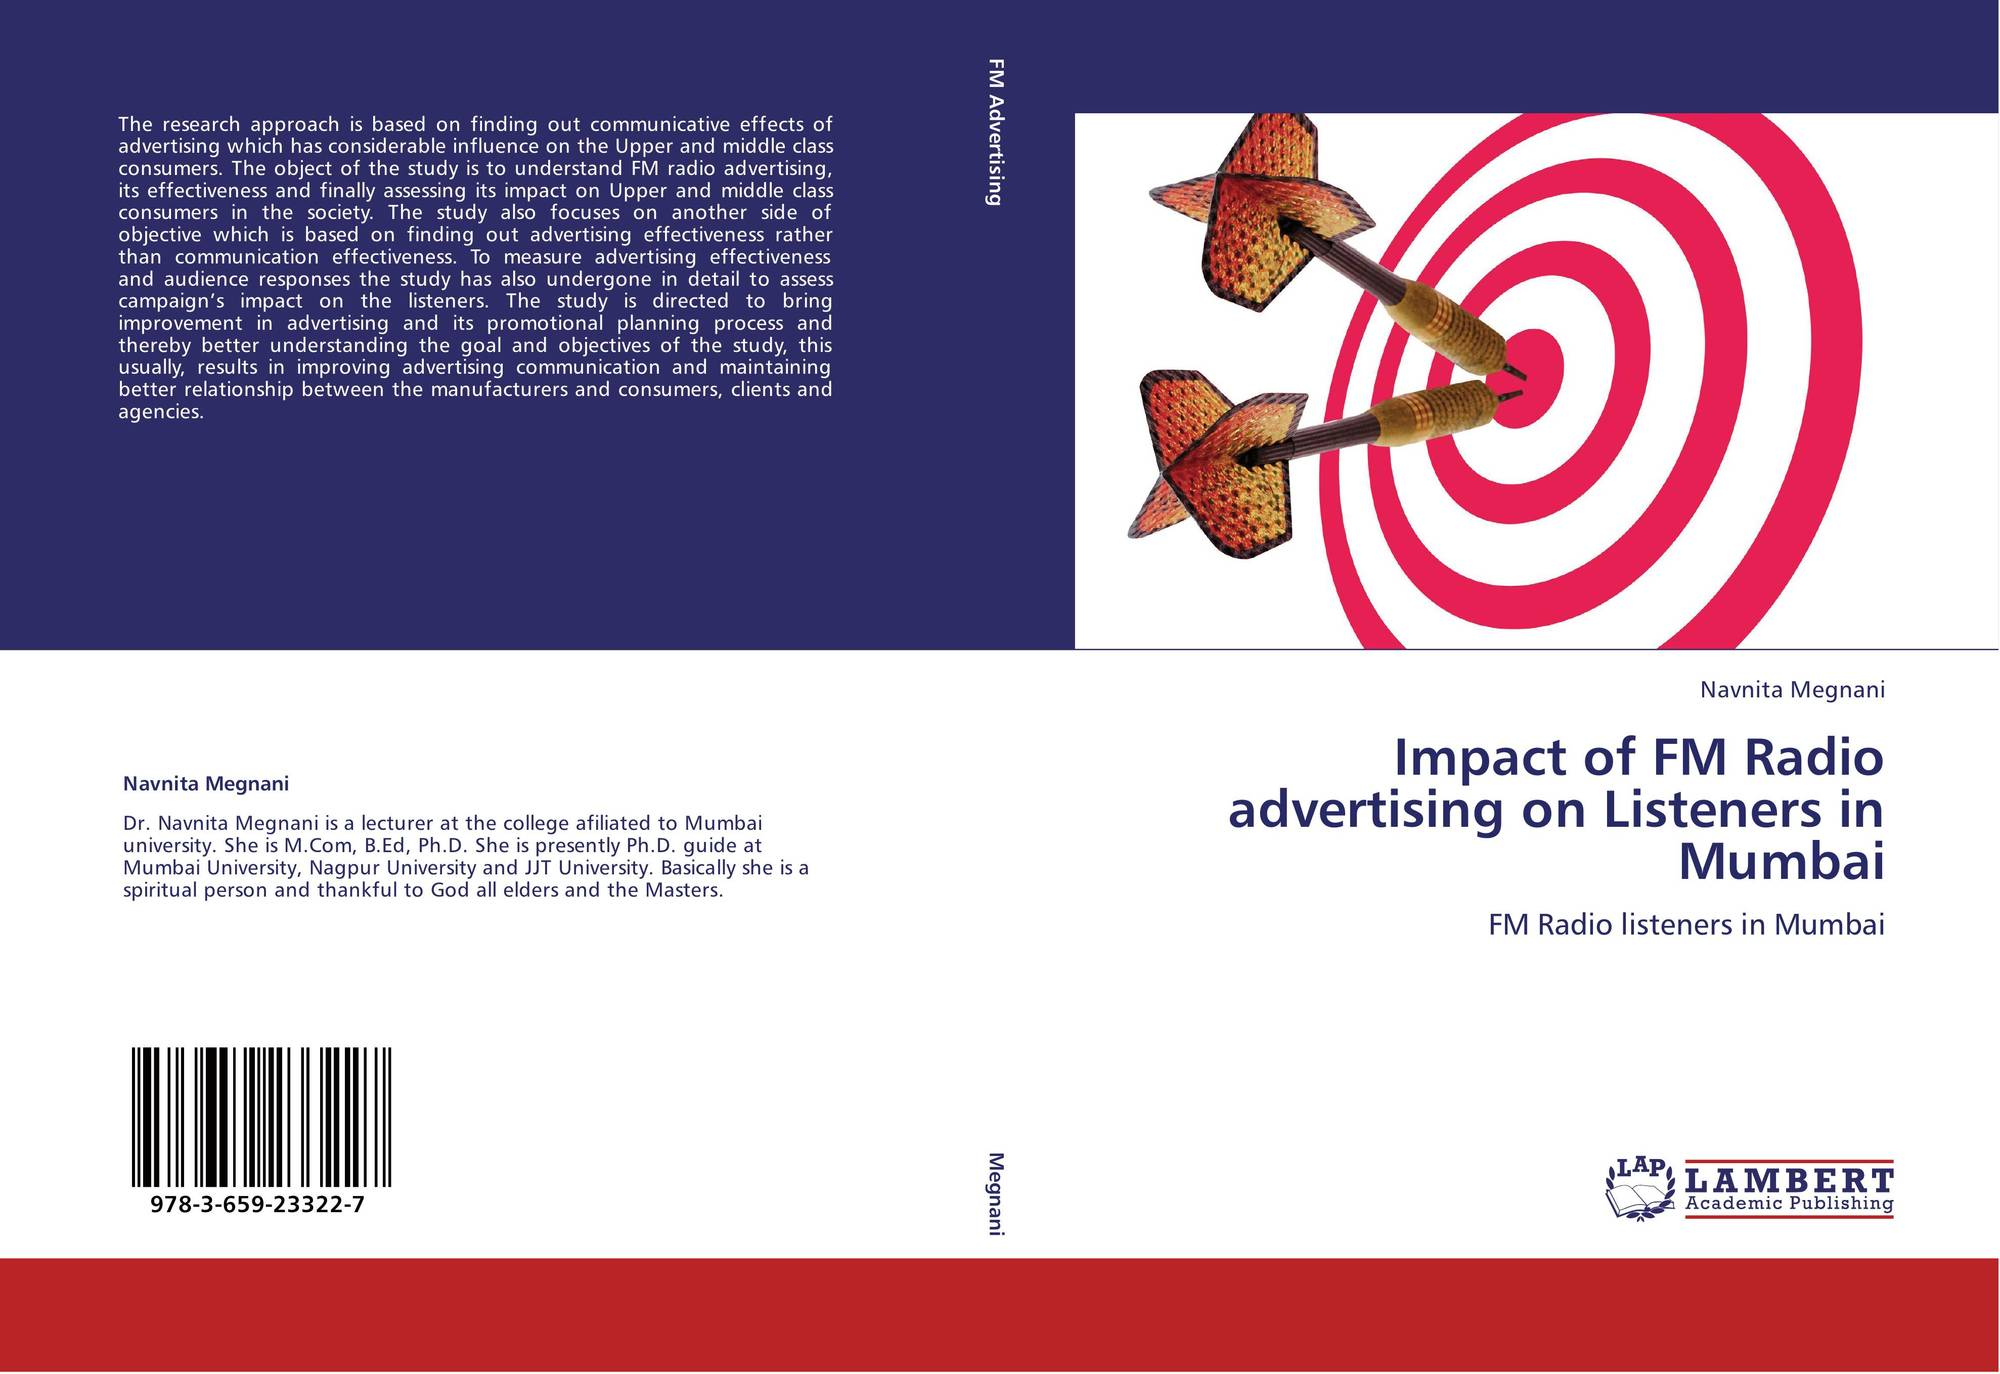 a study of the effects of advertising in society This study investigates the effect of humor in advertising on three dependent measures of advertising effectiveness: perceived humor, attitude they are expected to occur within patterns of social interactions, and are regulated by society in much the same way as other social-physiological.